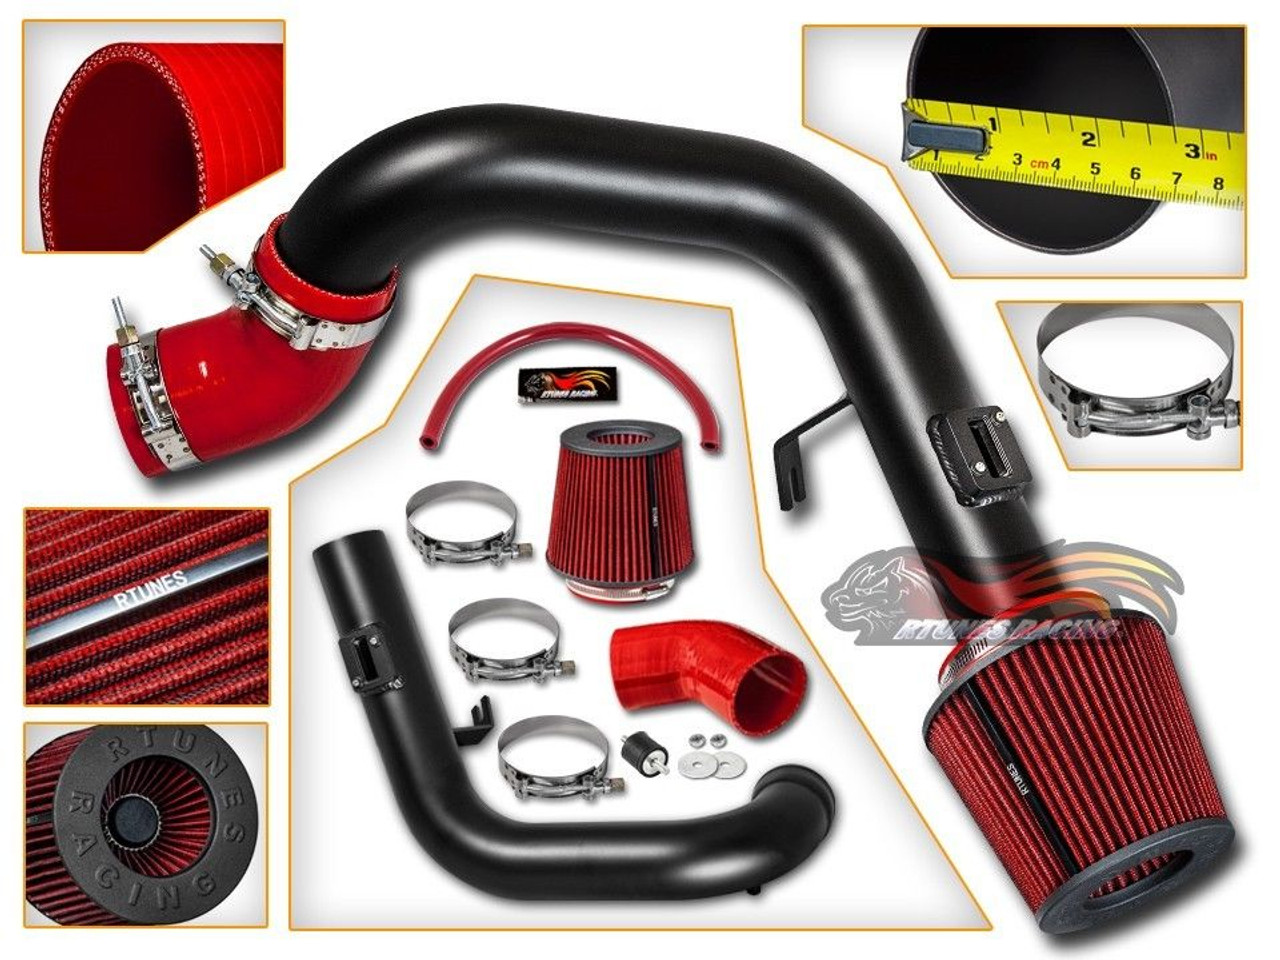 Cold Air Intake Kit for Chevrolet Cobalt SS (2005-2007) with 2 0L  Supercharged Engine